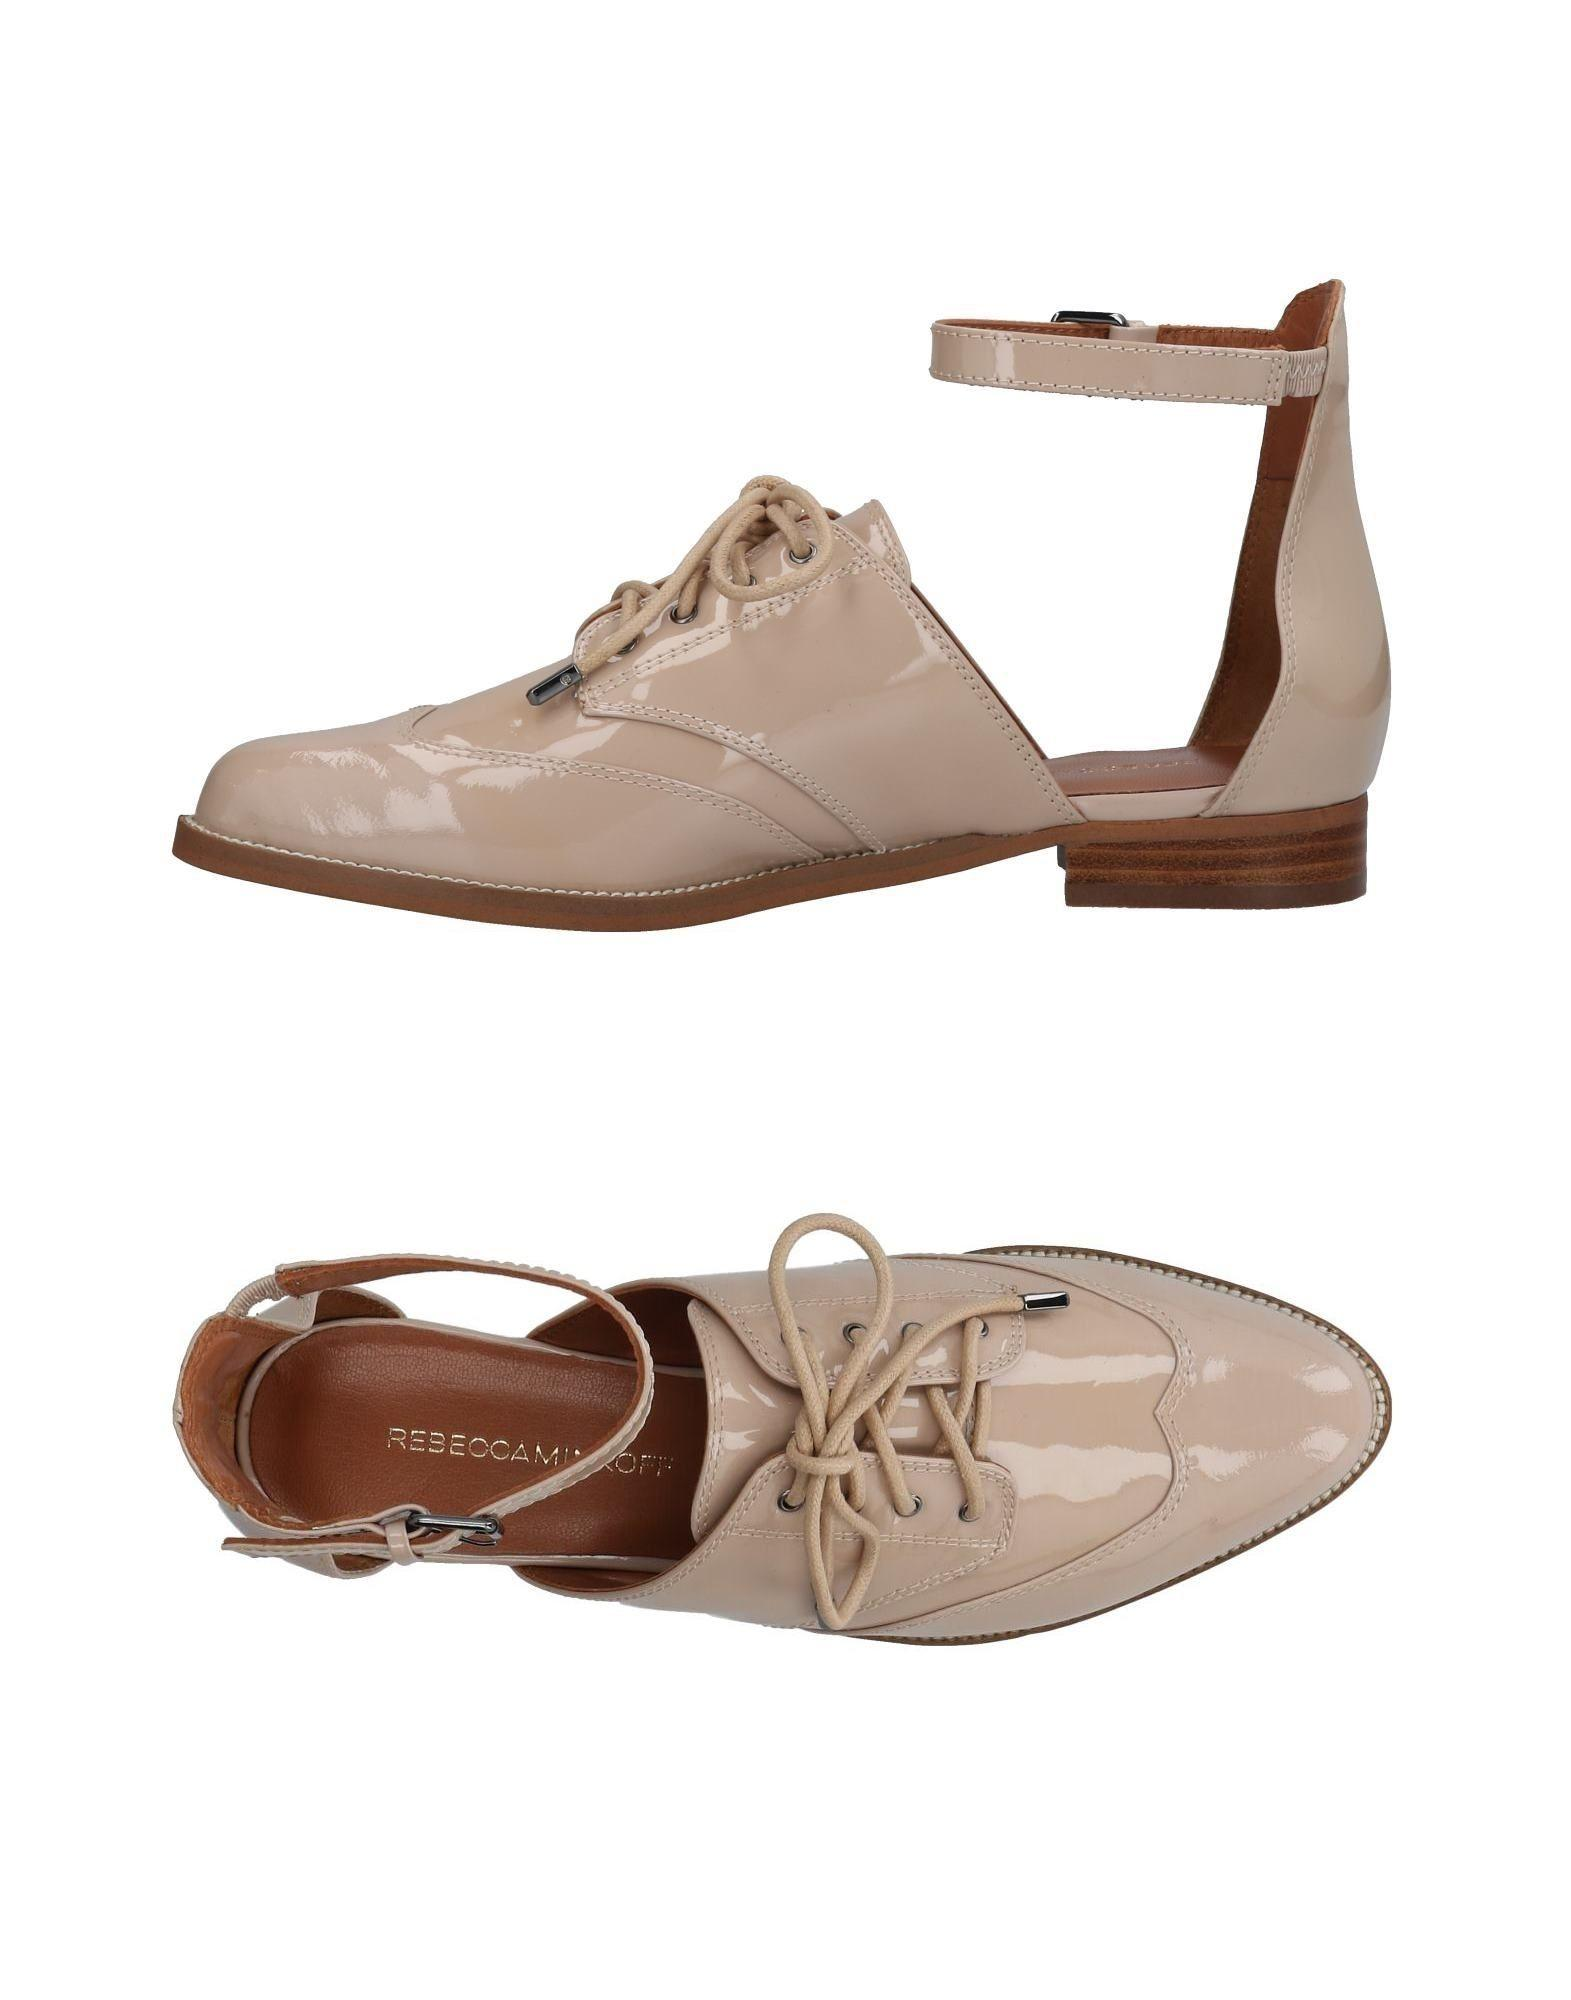 Rebecca Minkoff Lace-up Shoes In Sand